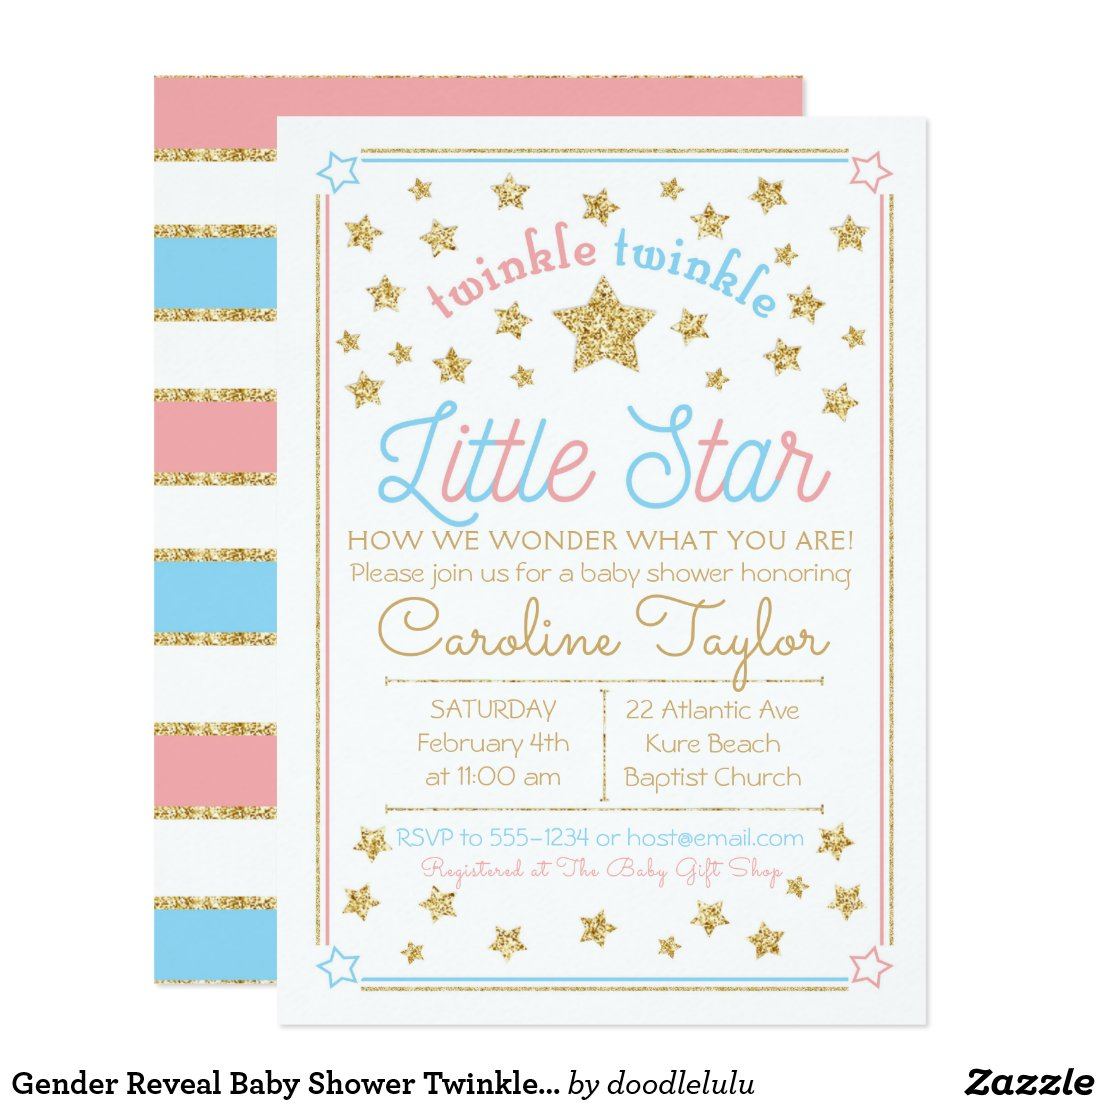 Gender Reveal Little Star Baby Shower Invitation